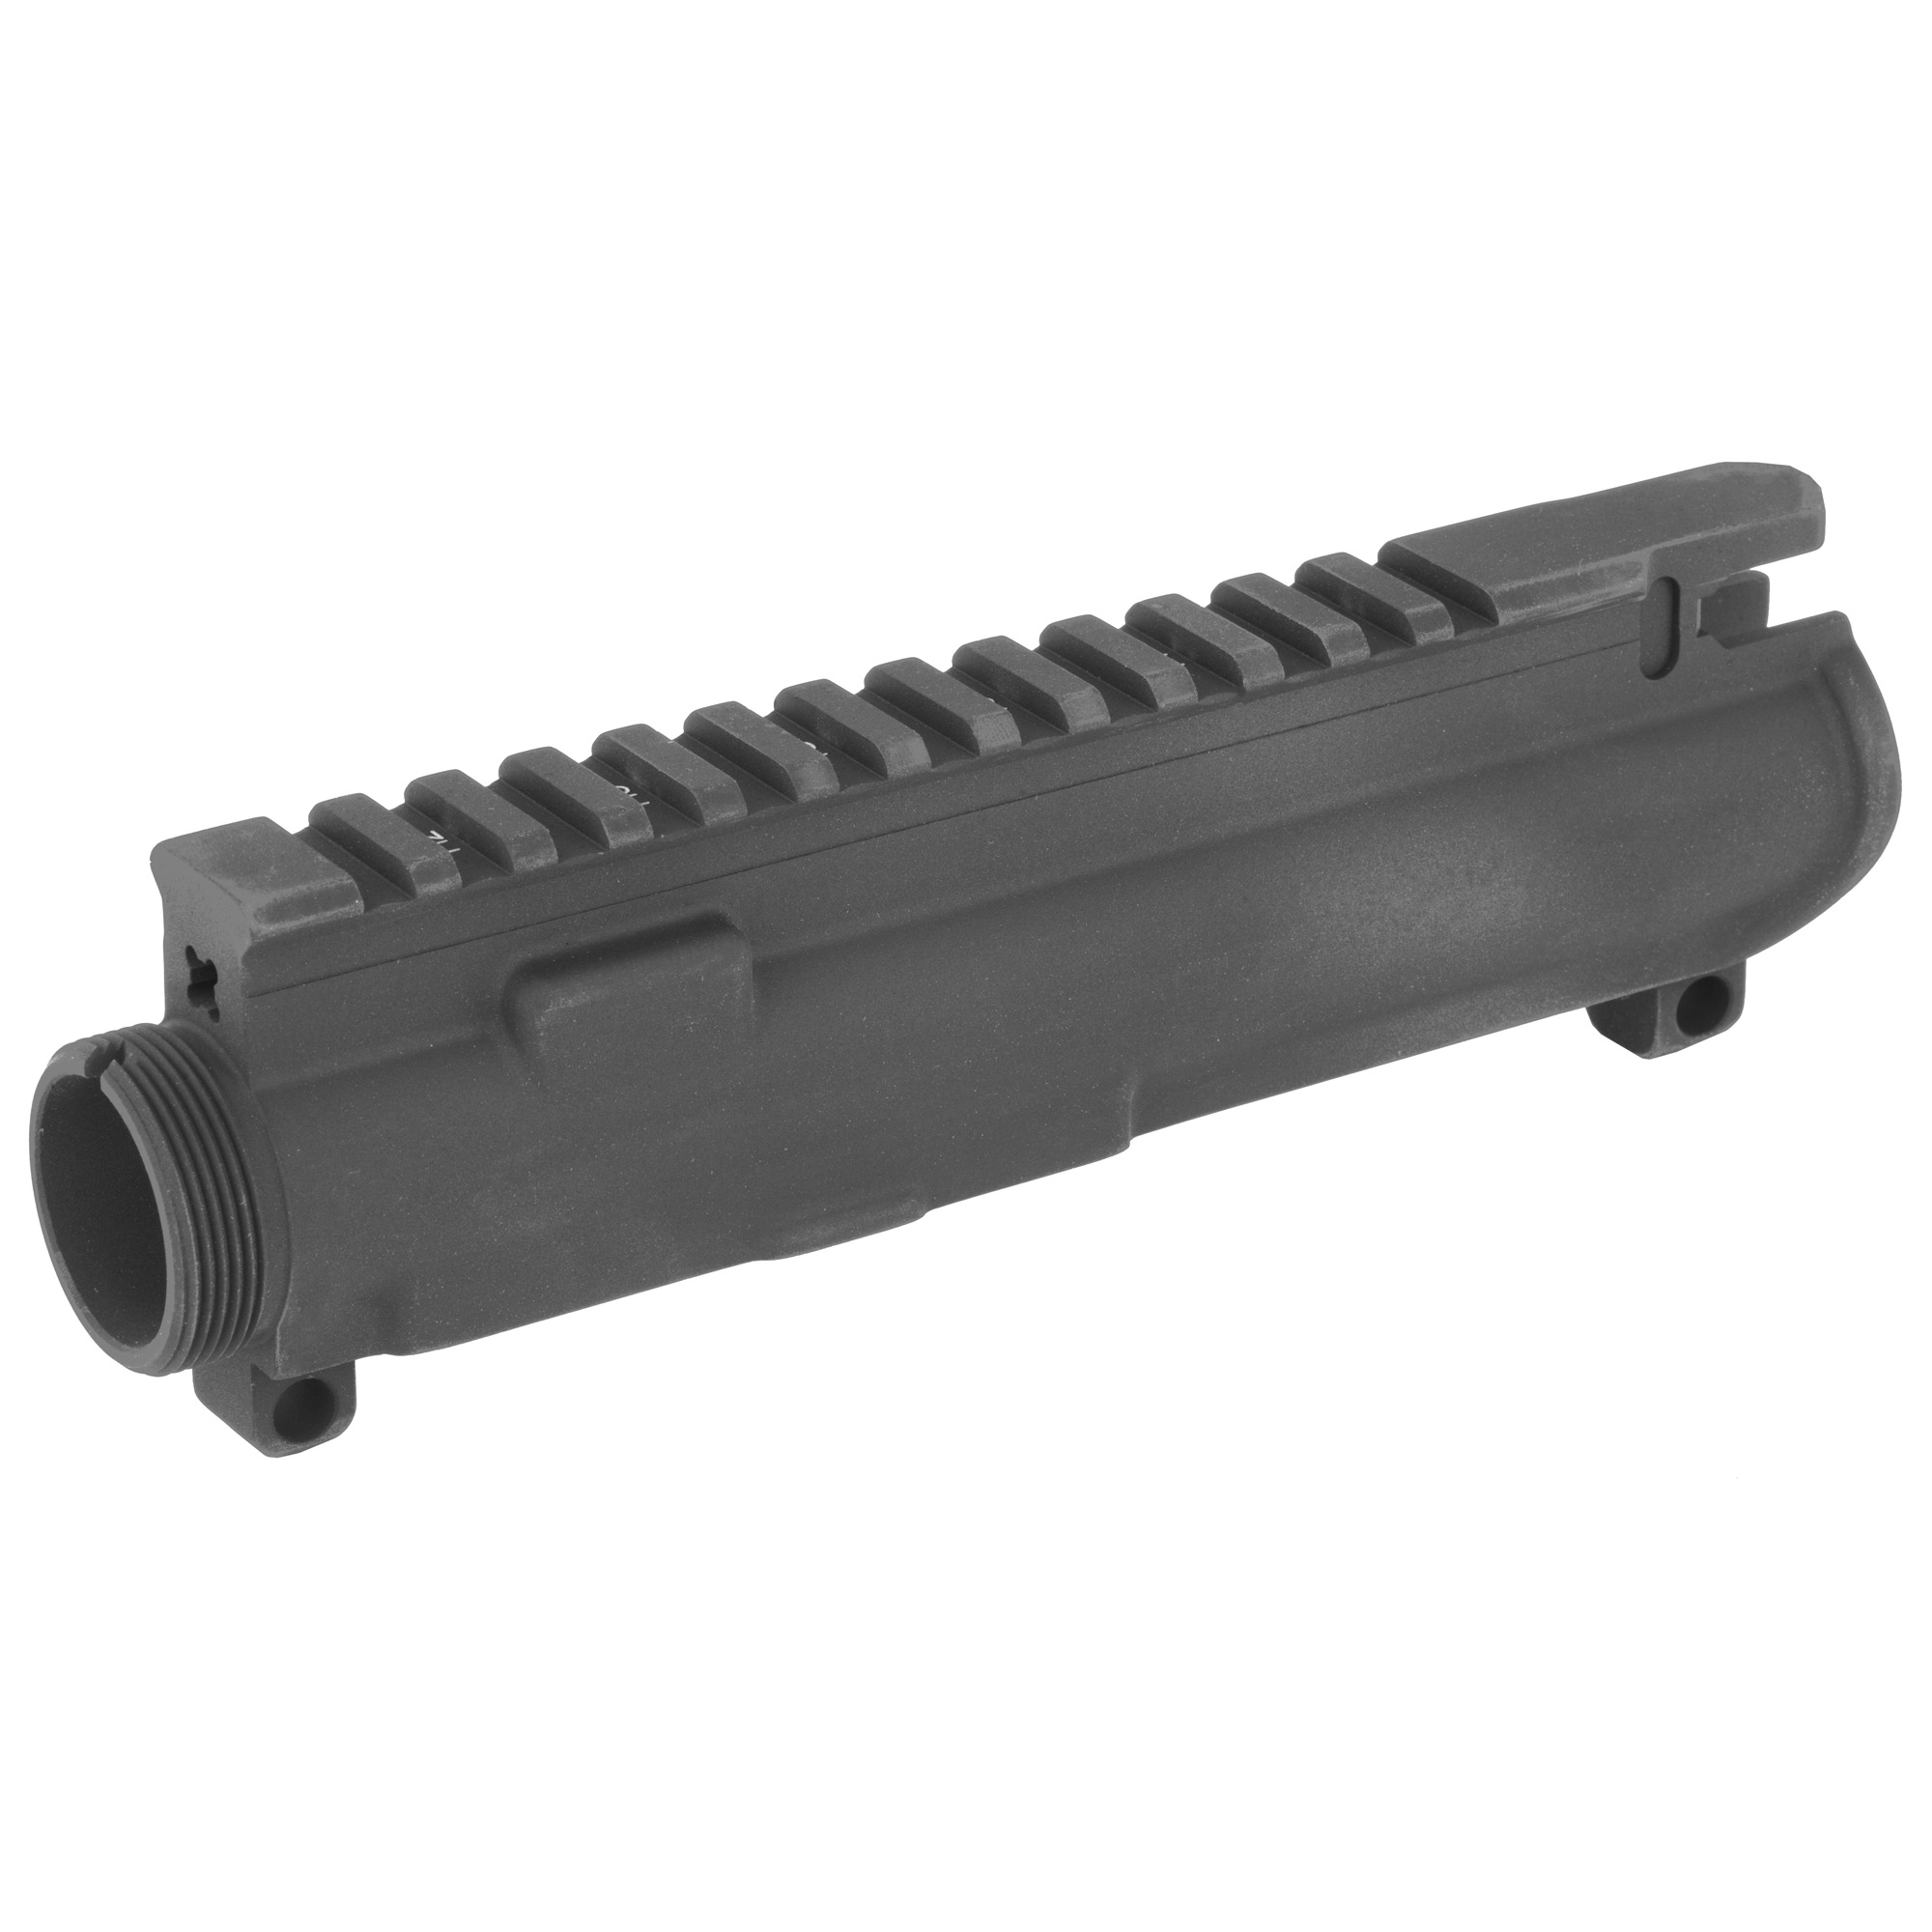 YHM has long been a manufacturer of quality AR-15 Upper Receivers and is very proud to offer YHM A3 Upper Receivers under the YHM label.